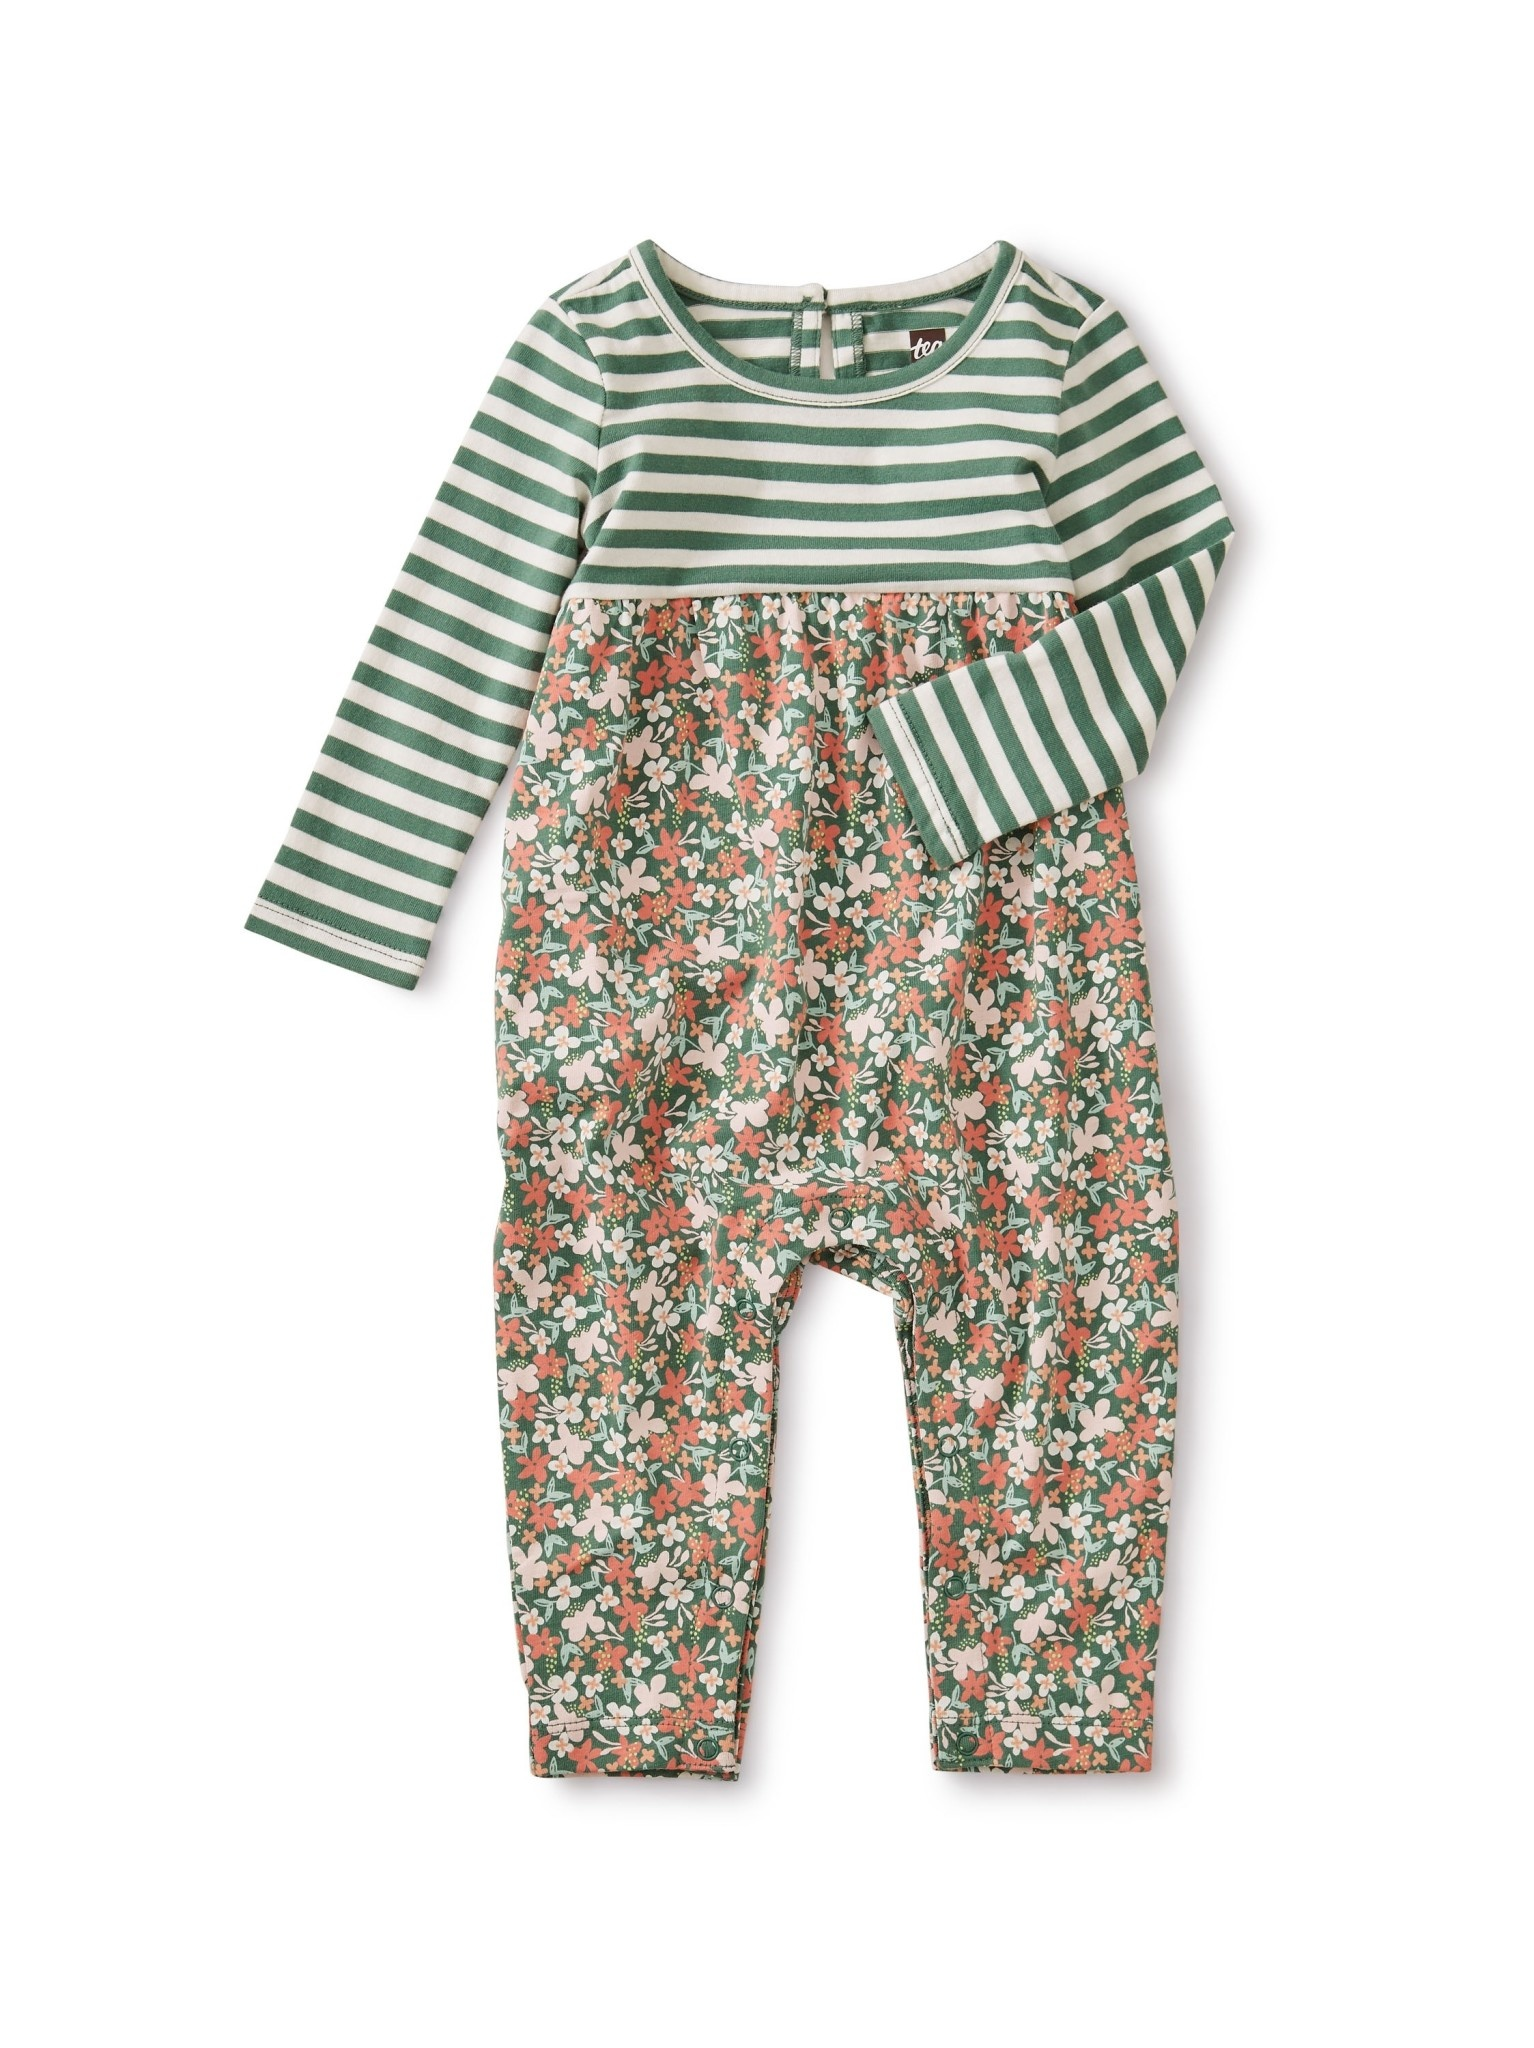 Tea Collection Cyprus Floral Two-Tone Romper